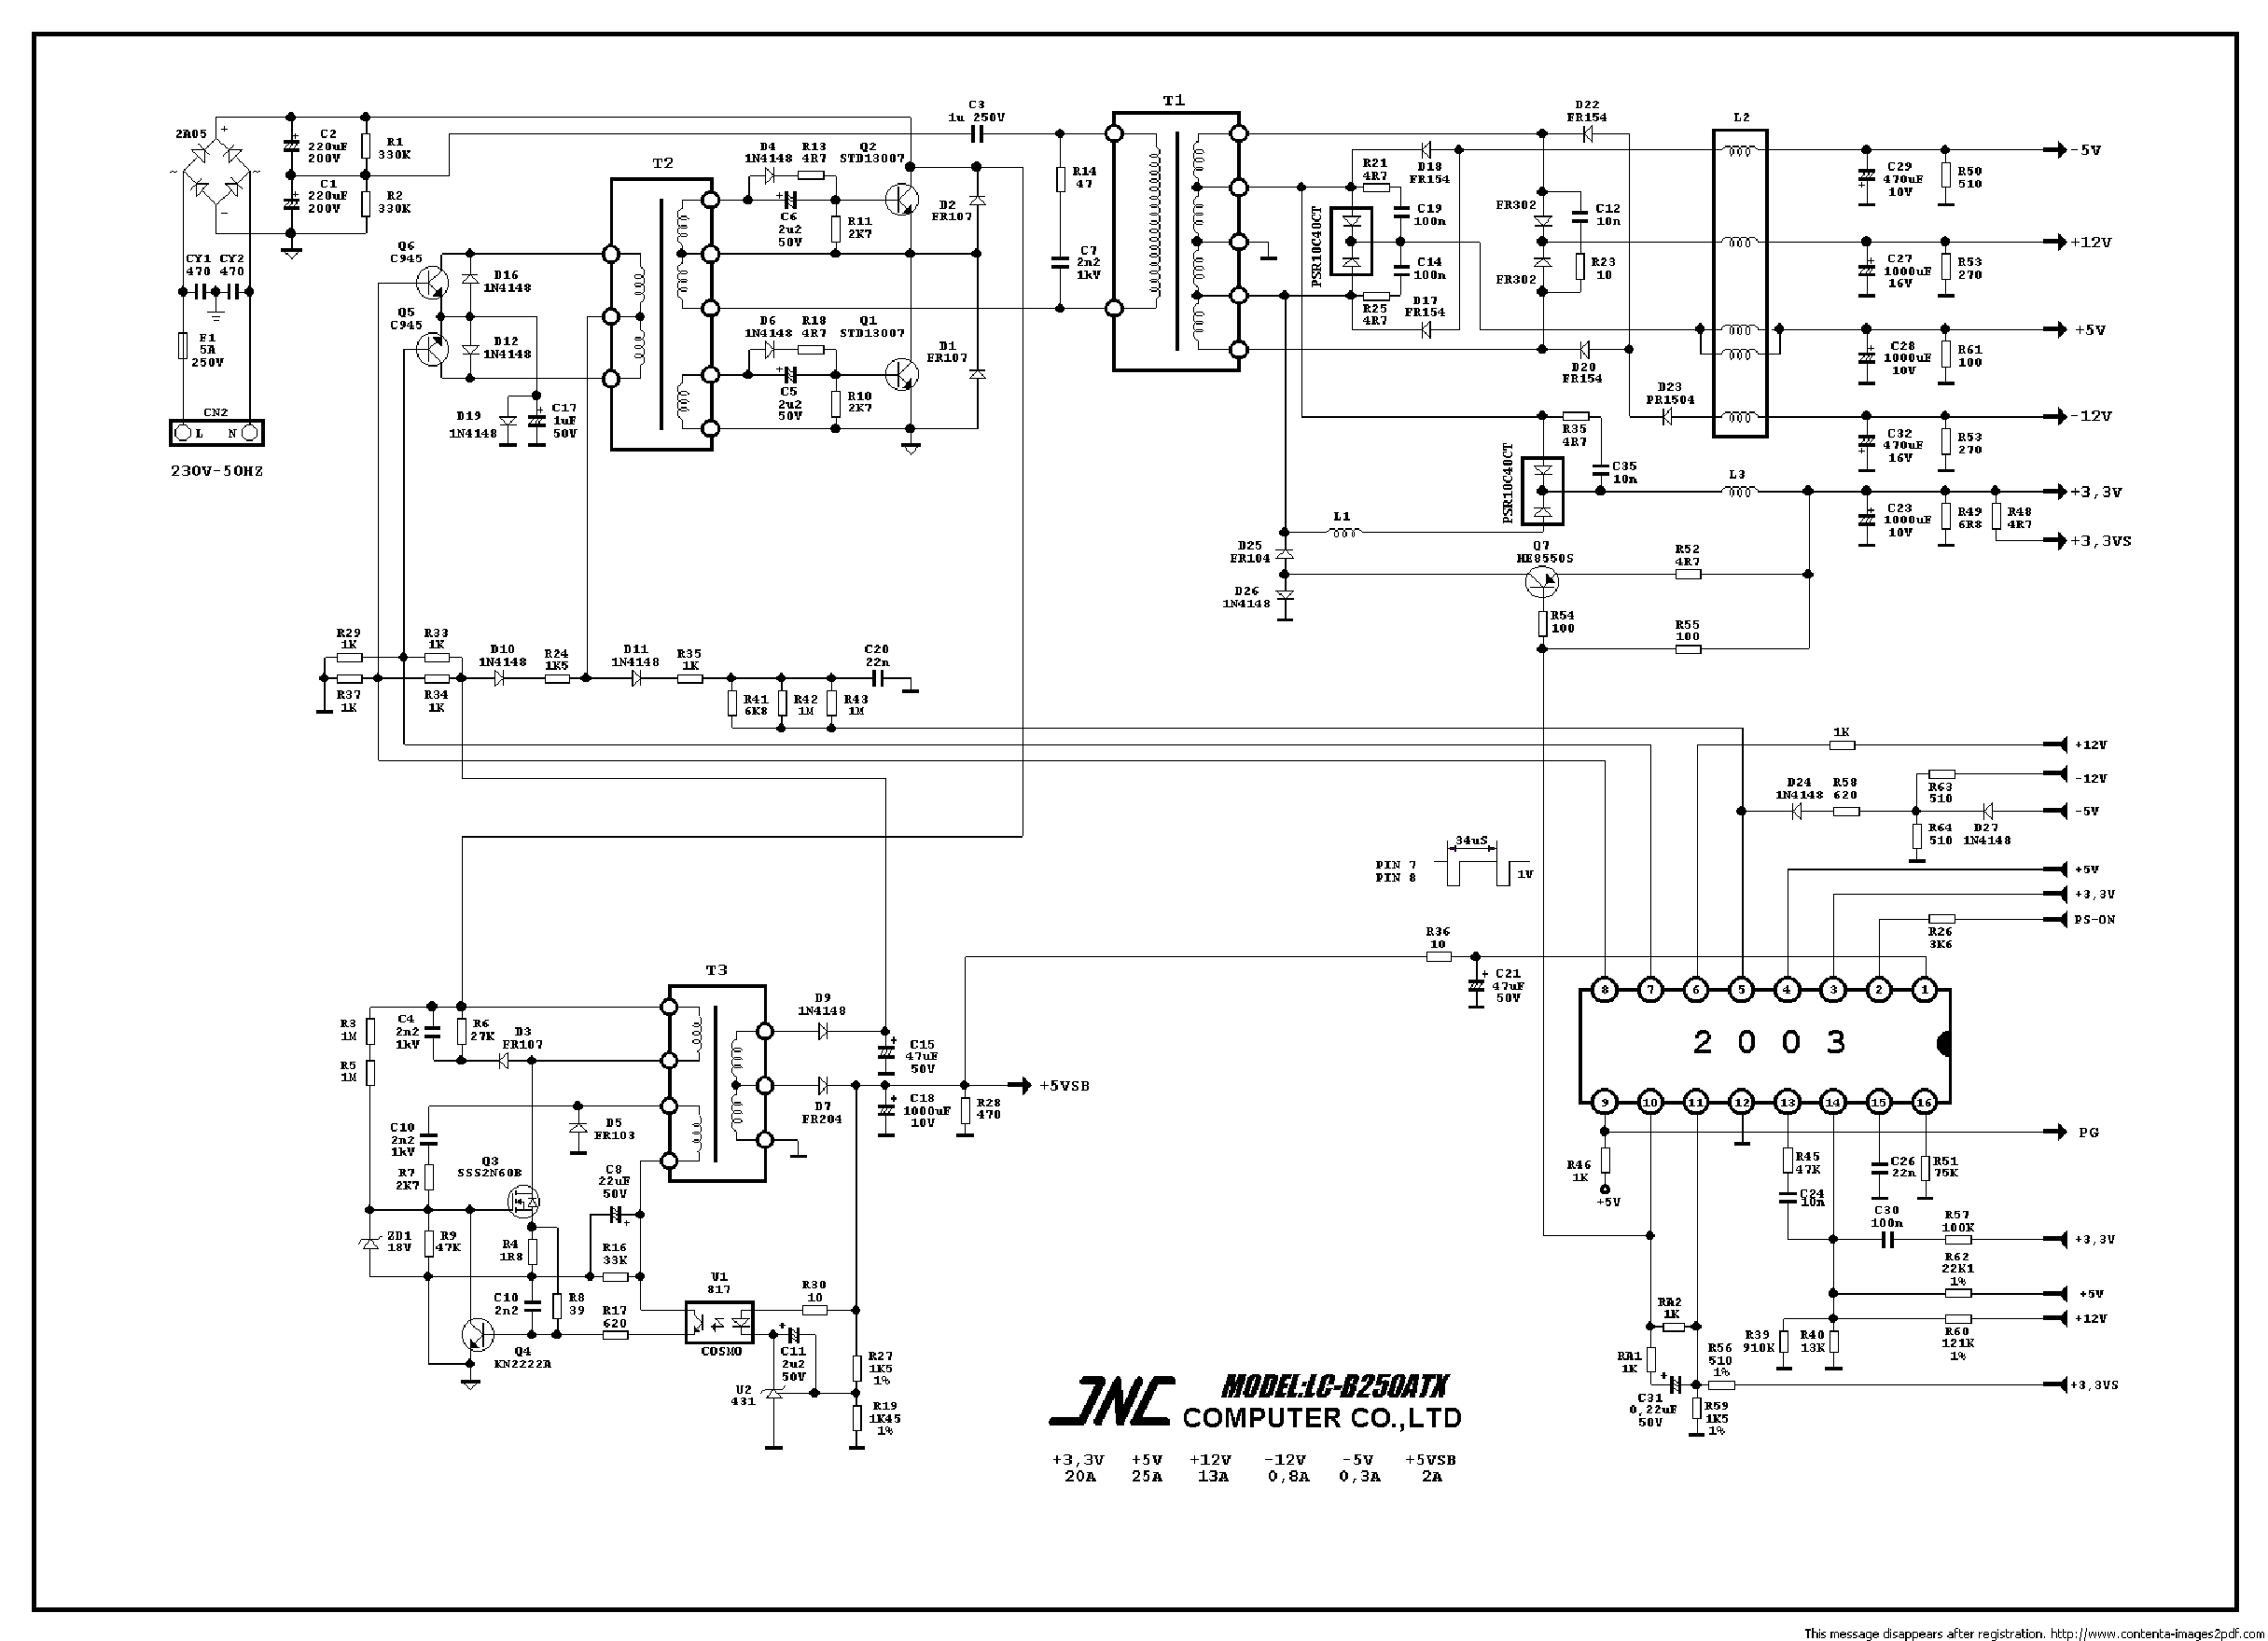 pc power wiring diagram electrical diagrams forum u2022 rh jimmellon co uk